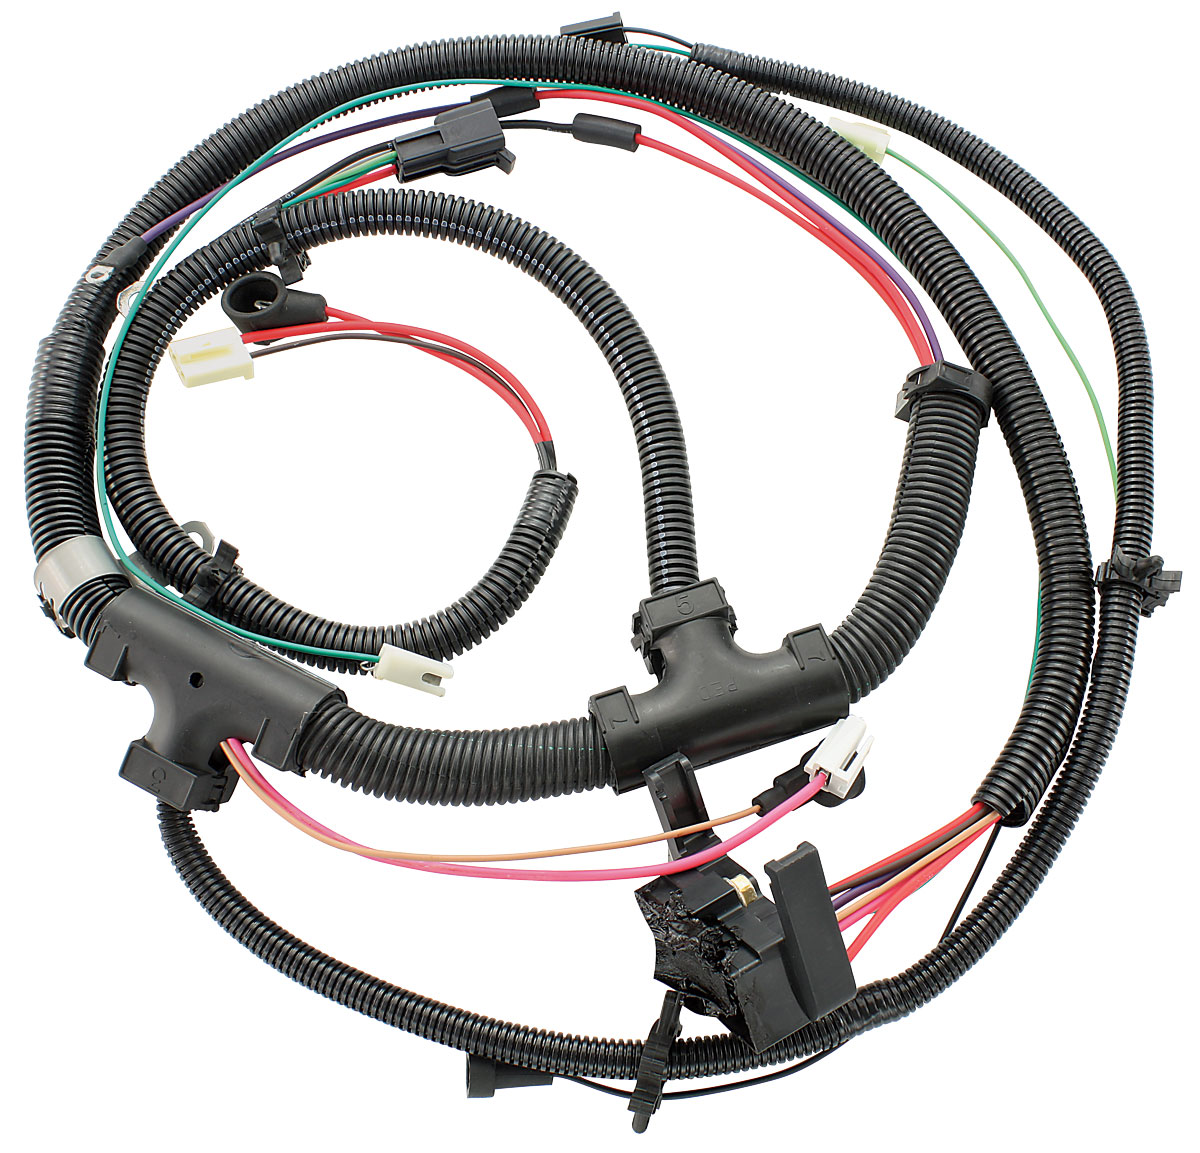 41557 lrg m&h 1978 monte carlo engine harness 305 w o california emissions monte carlo wiring harness at bayanpartner.co